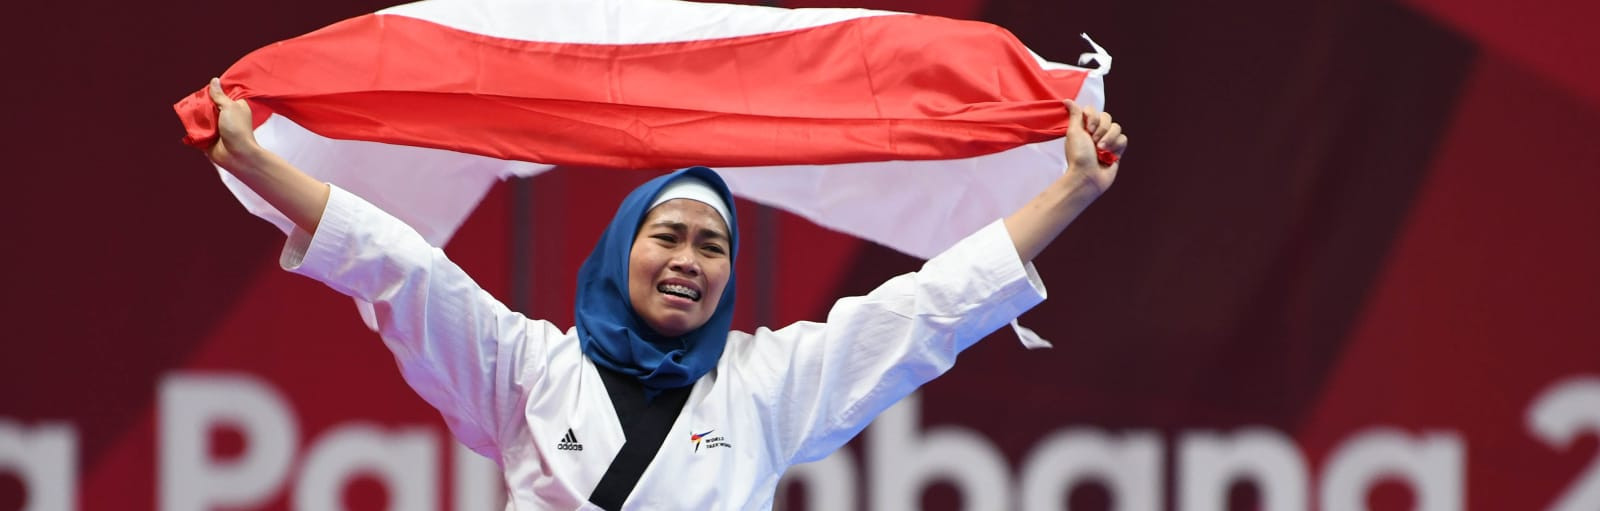 Taekwondo player Defia Rosmaniar secured Indonesia's first gold medal of the 2018 Asian Games in Jakarta ©Asian Games 2018